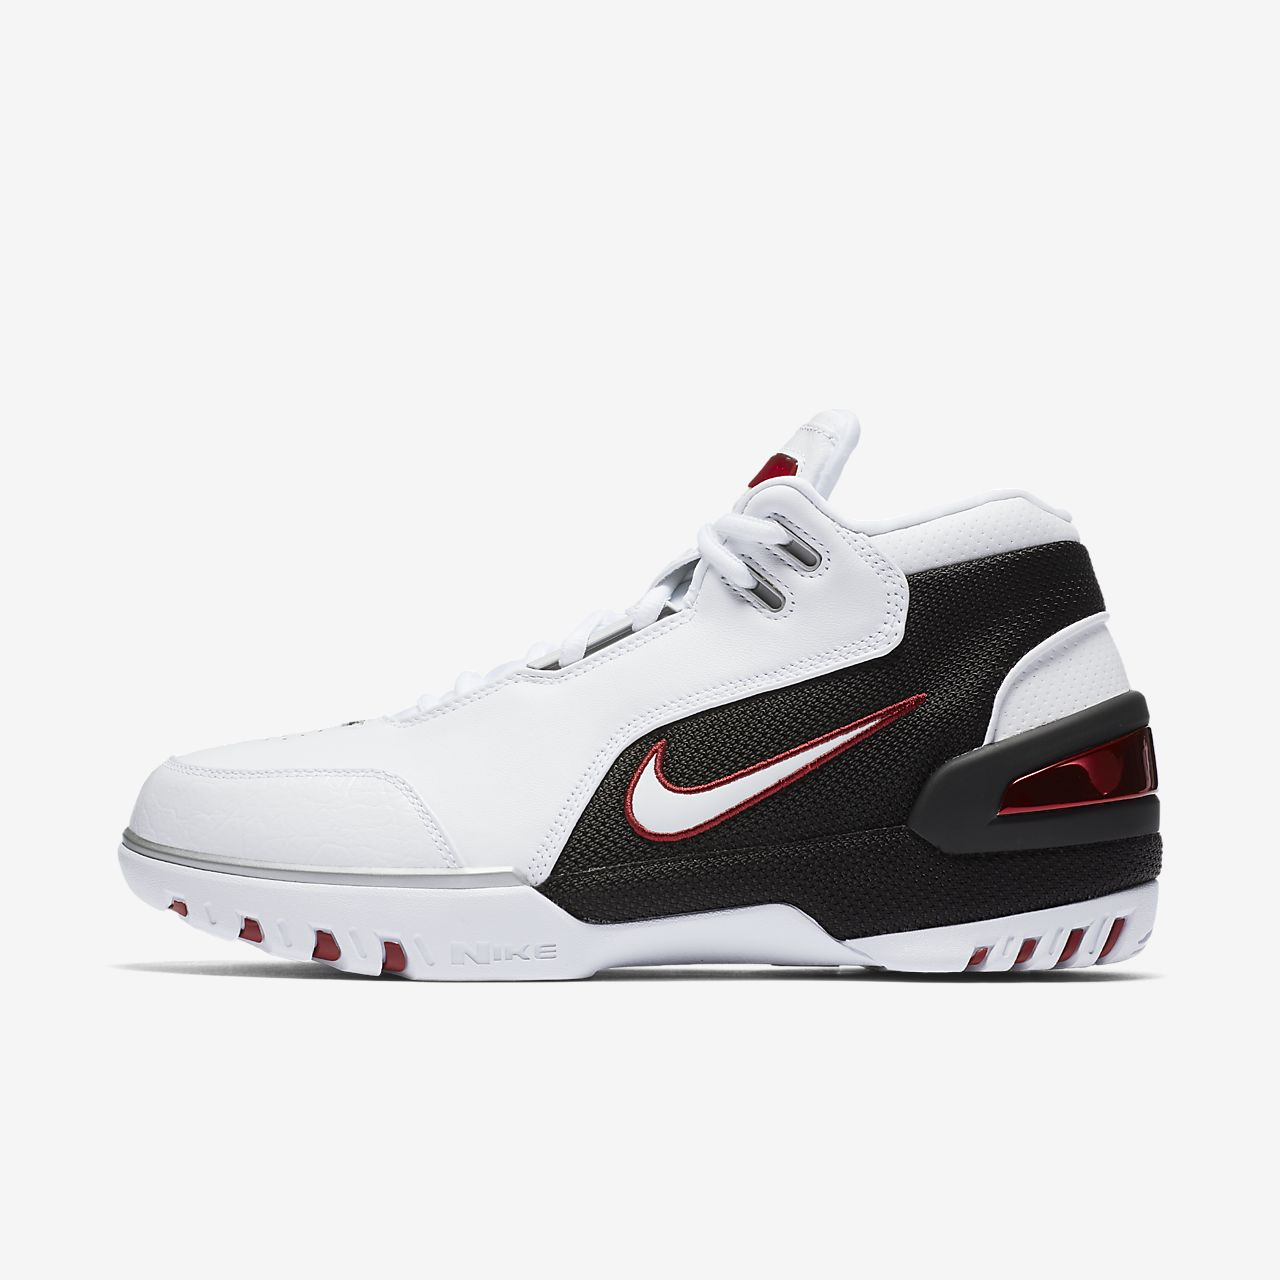 online store 93d1f e0fe3 ... Nike Air Zoom Generation QS basketsko for herre